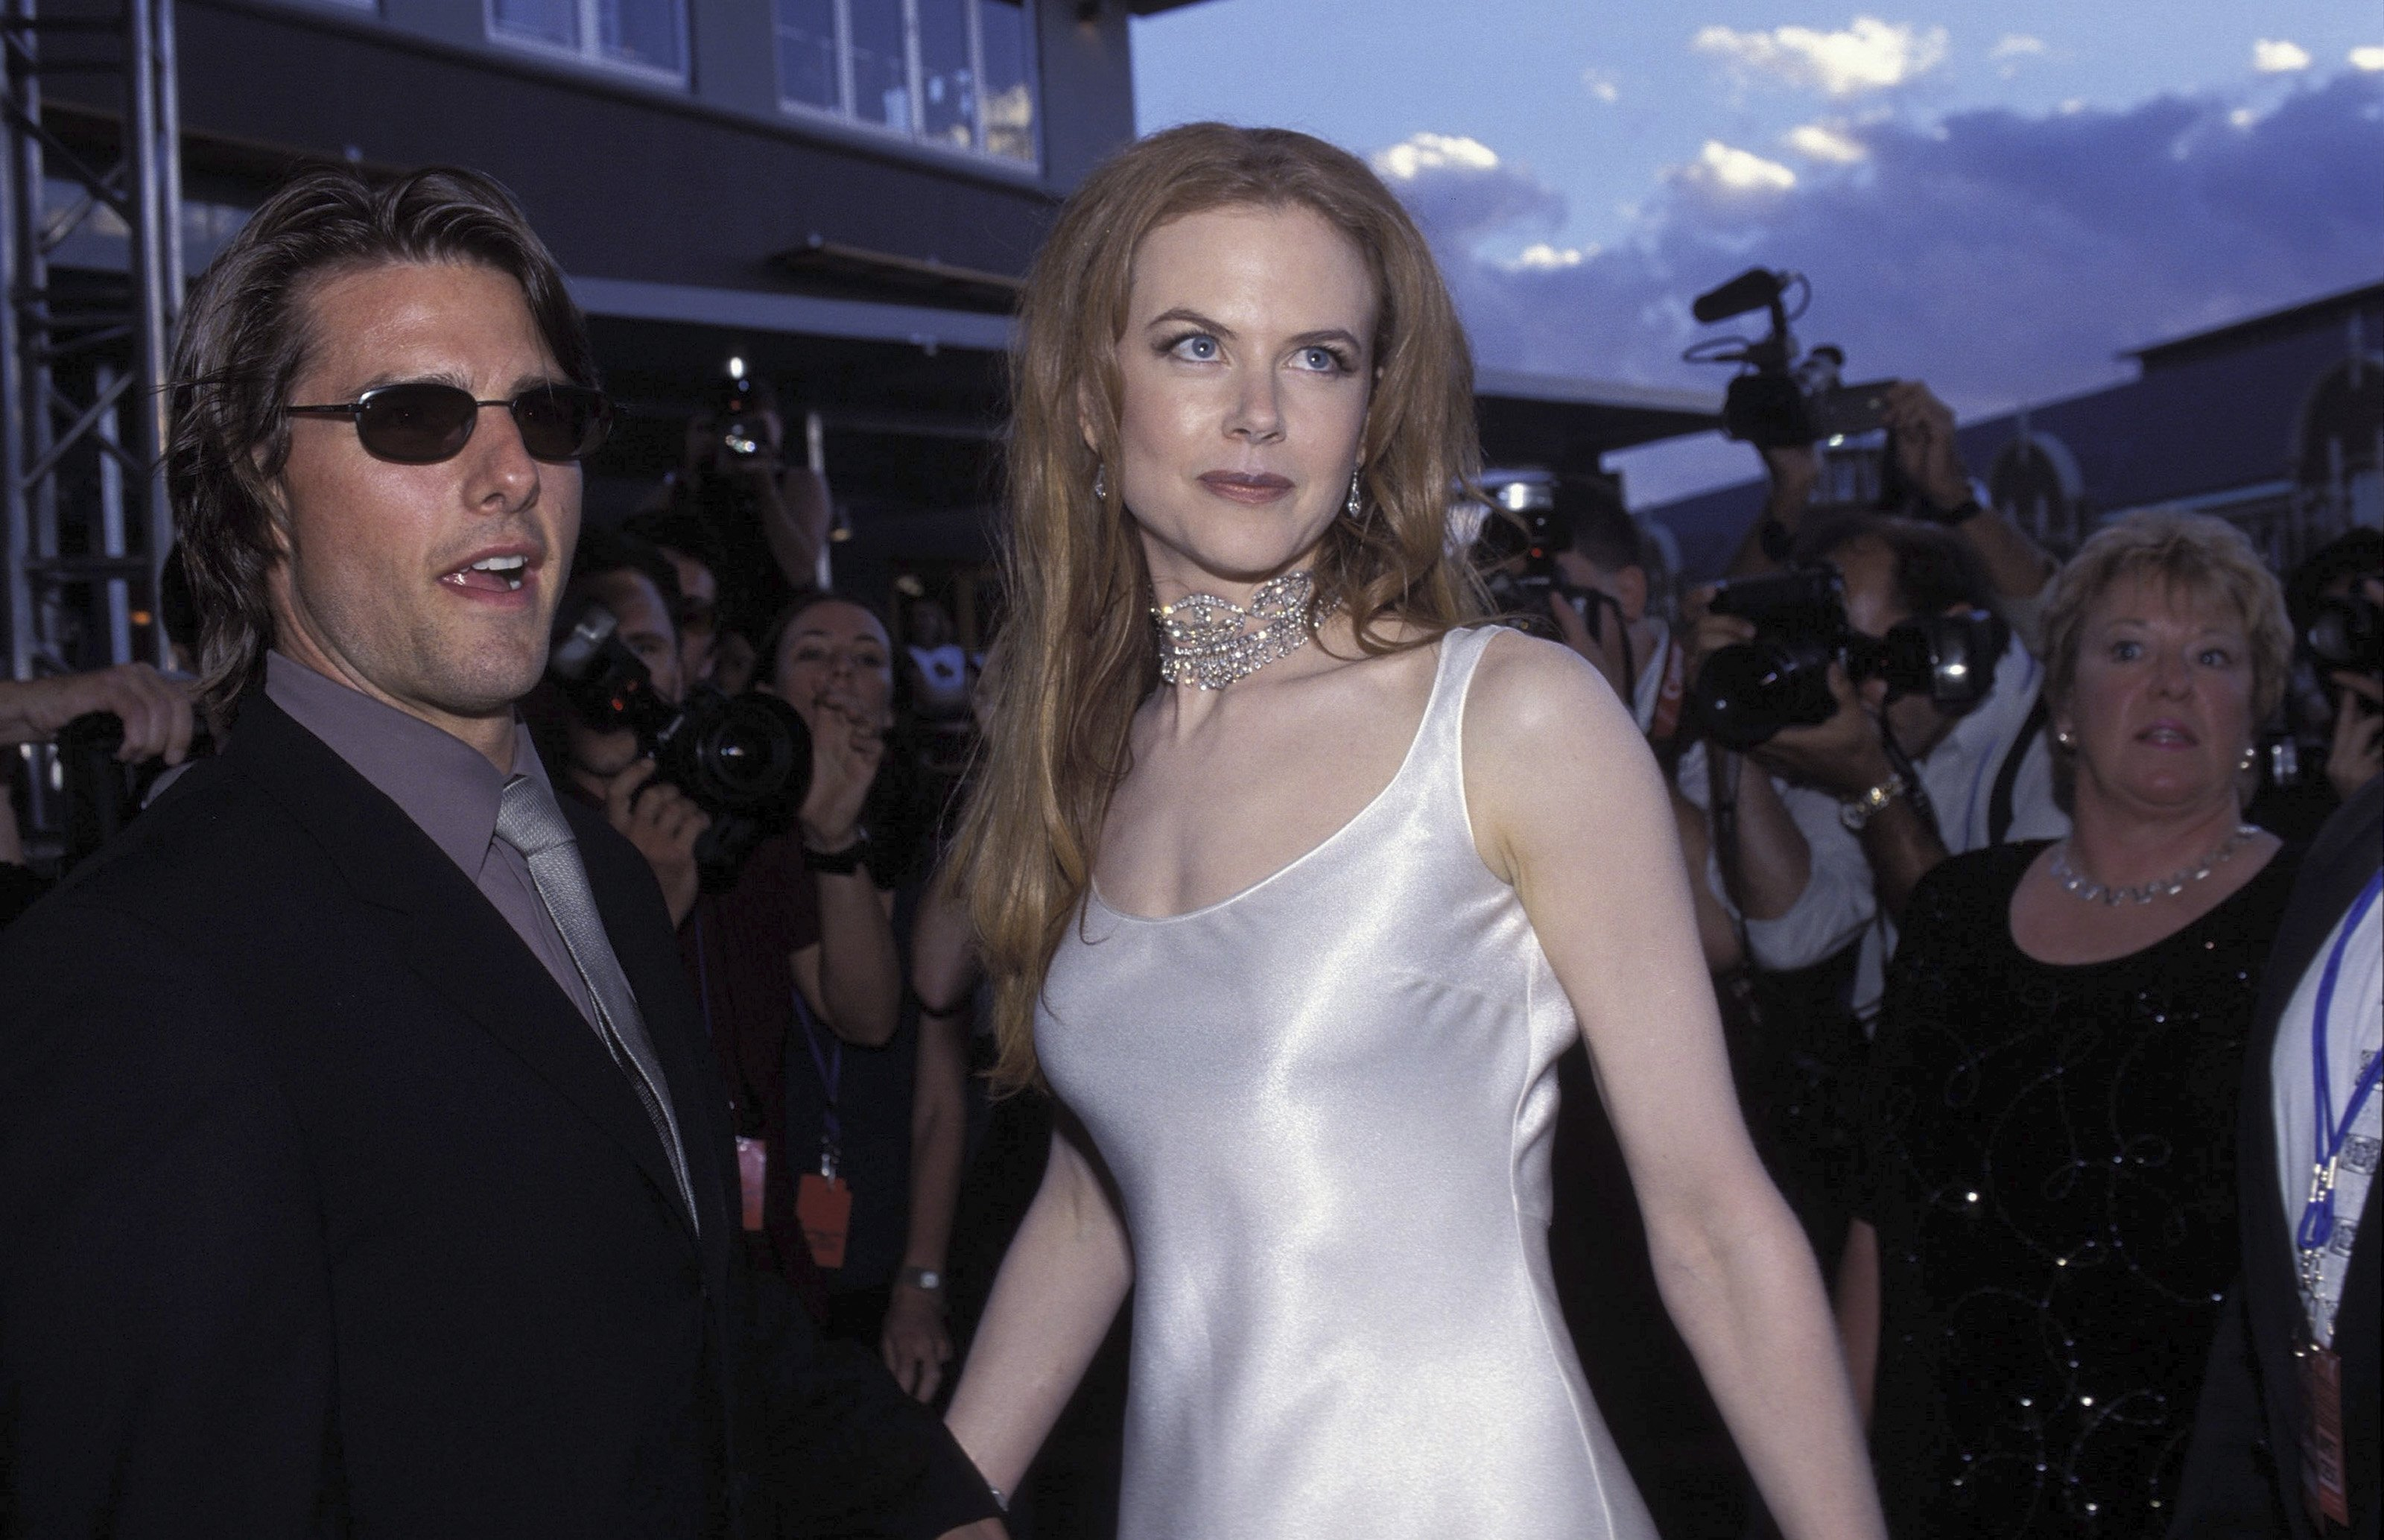 Nicole Kidman and Tom Cruise at the Fox Studios Gala opening in Sydney, Australia in 1999 | Source: Getty Images